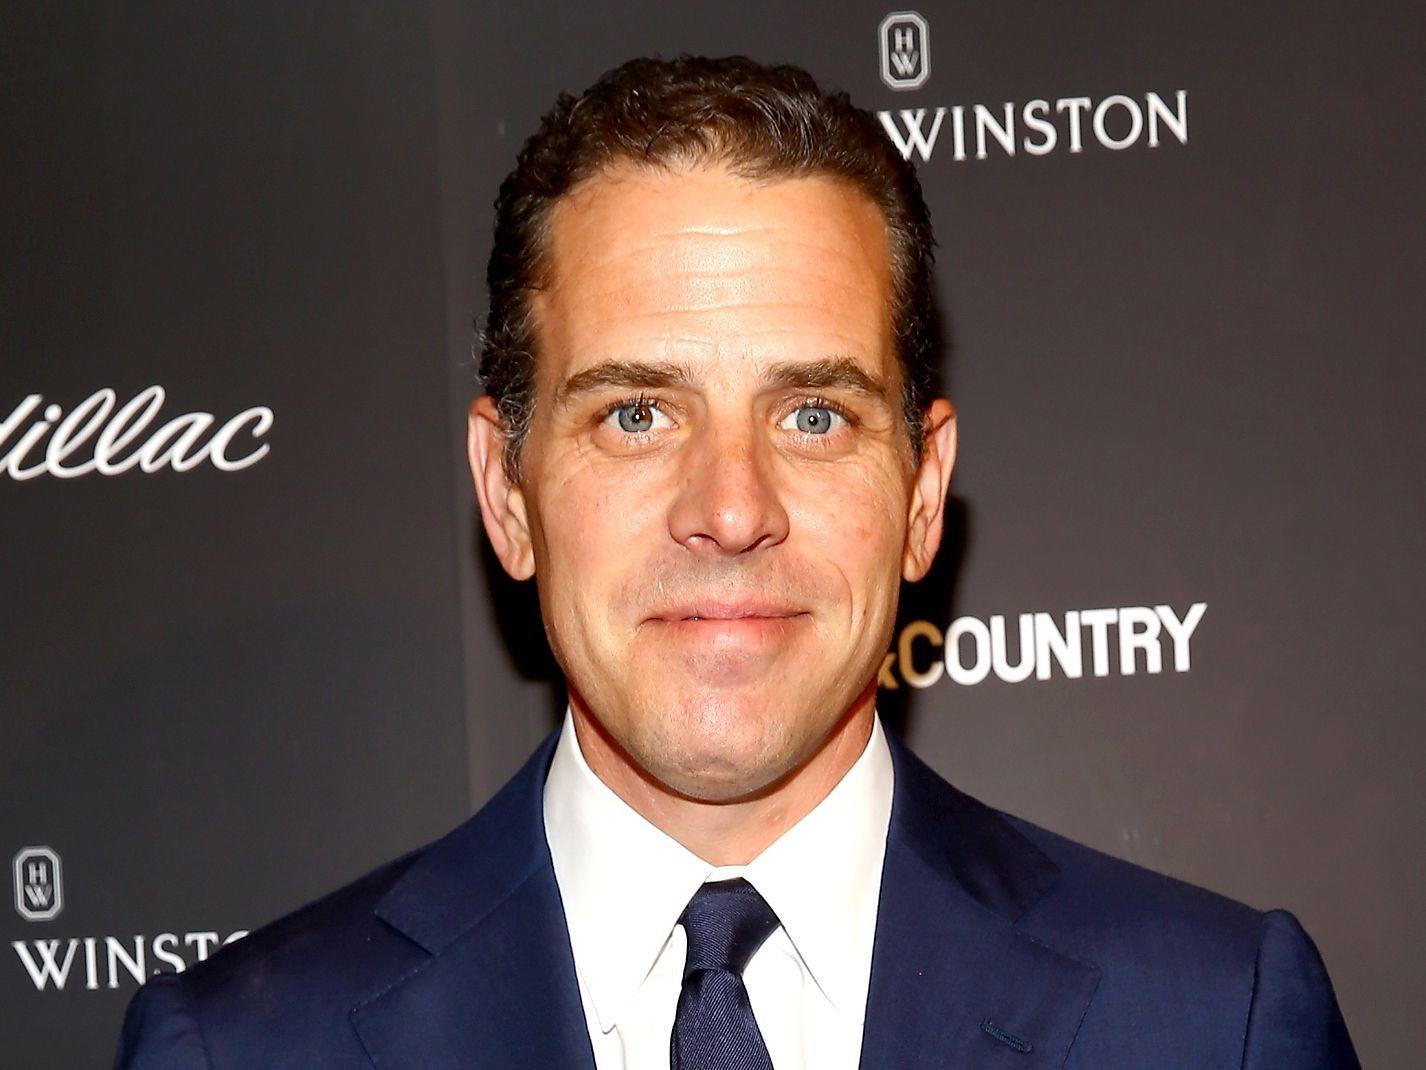 WaPo: Diplomat was concerned about Hunter Biden's Ukraine work